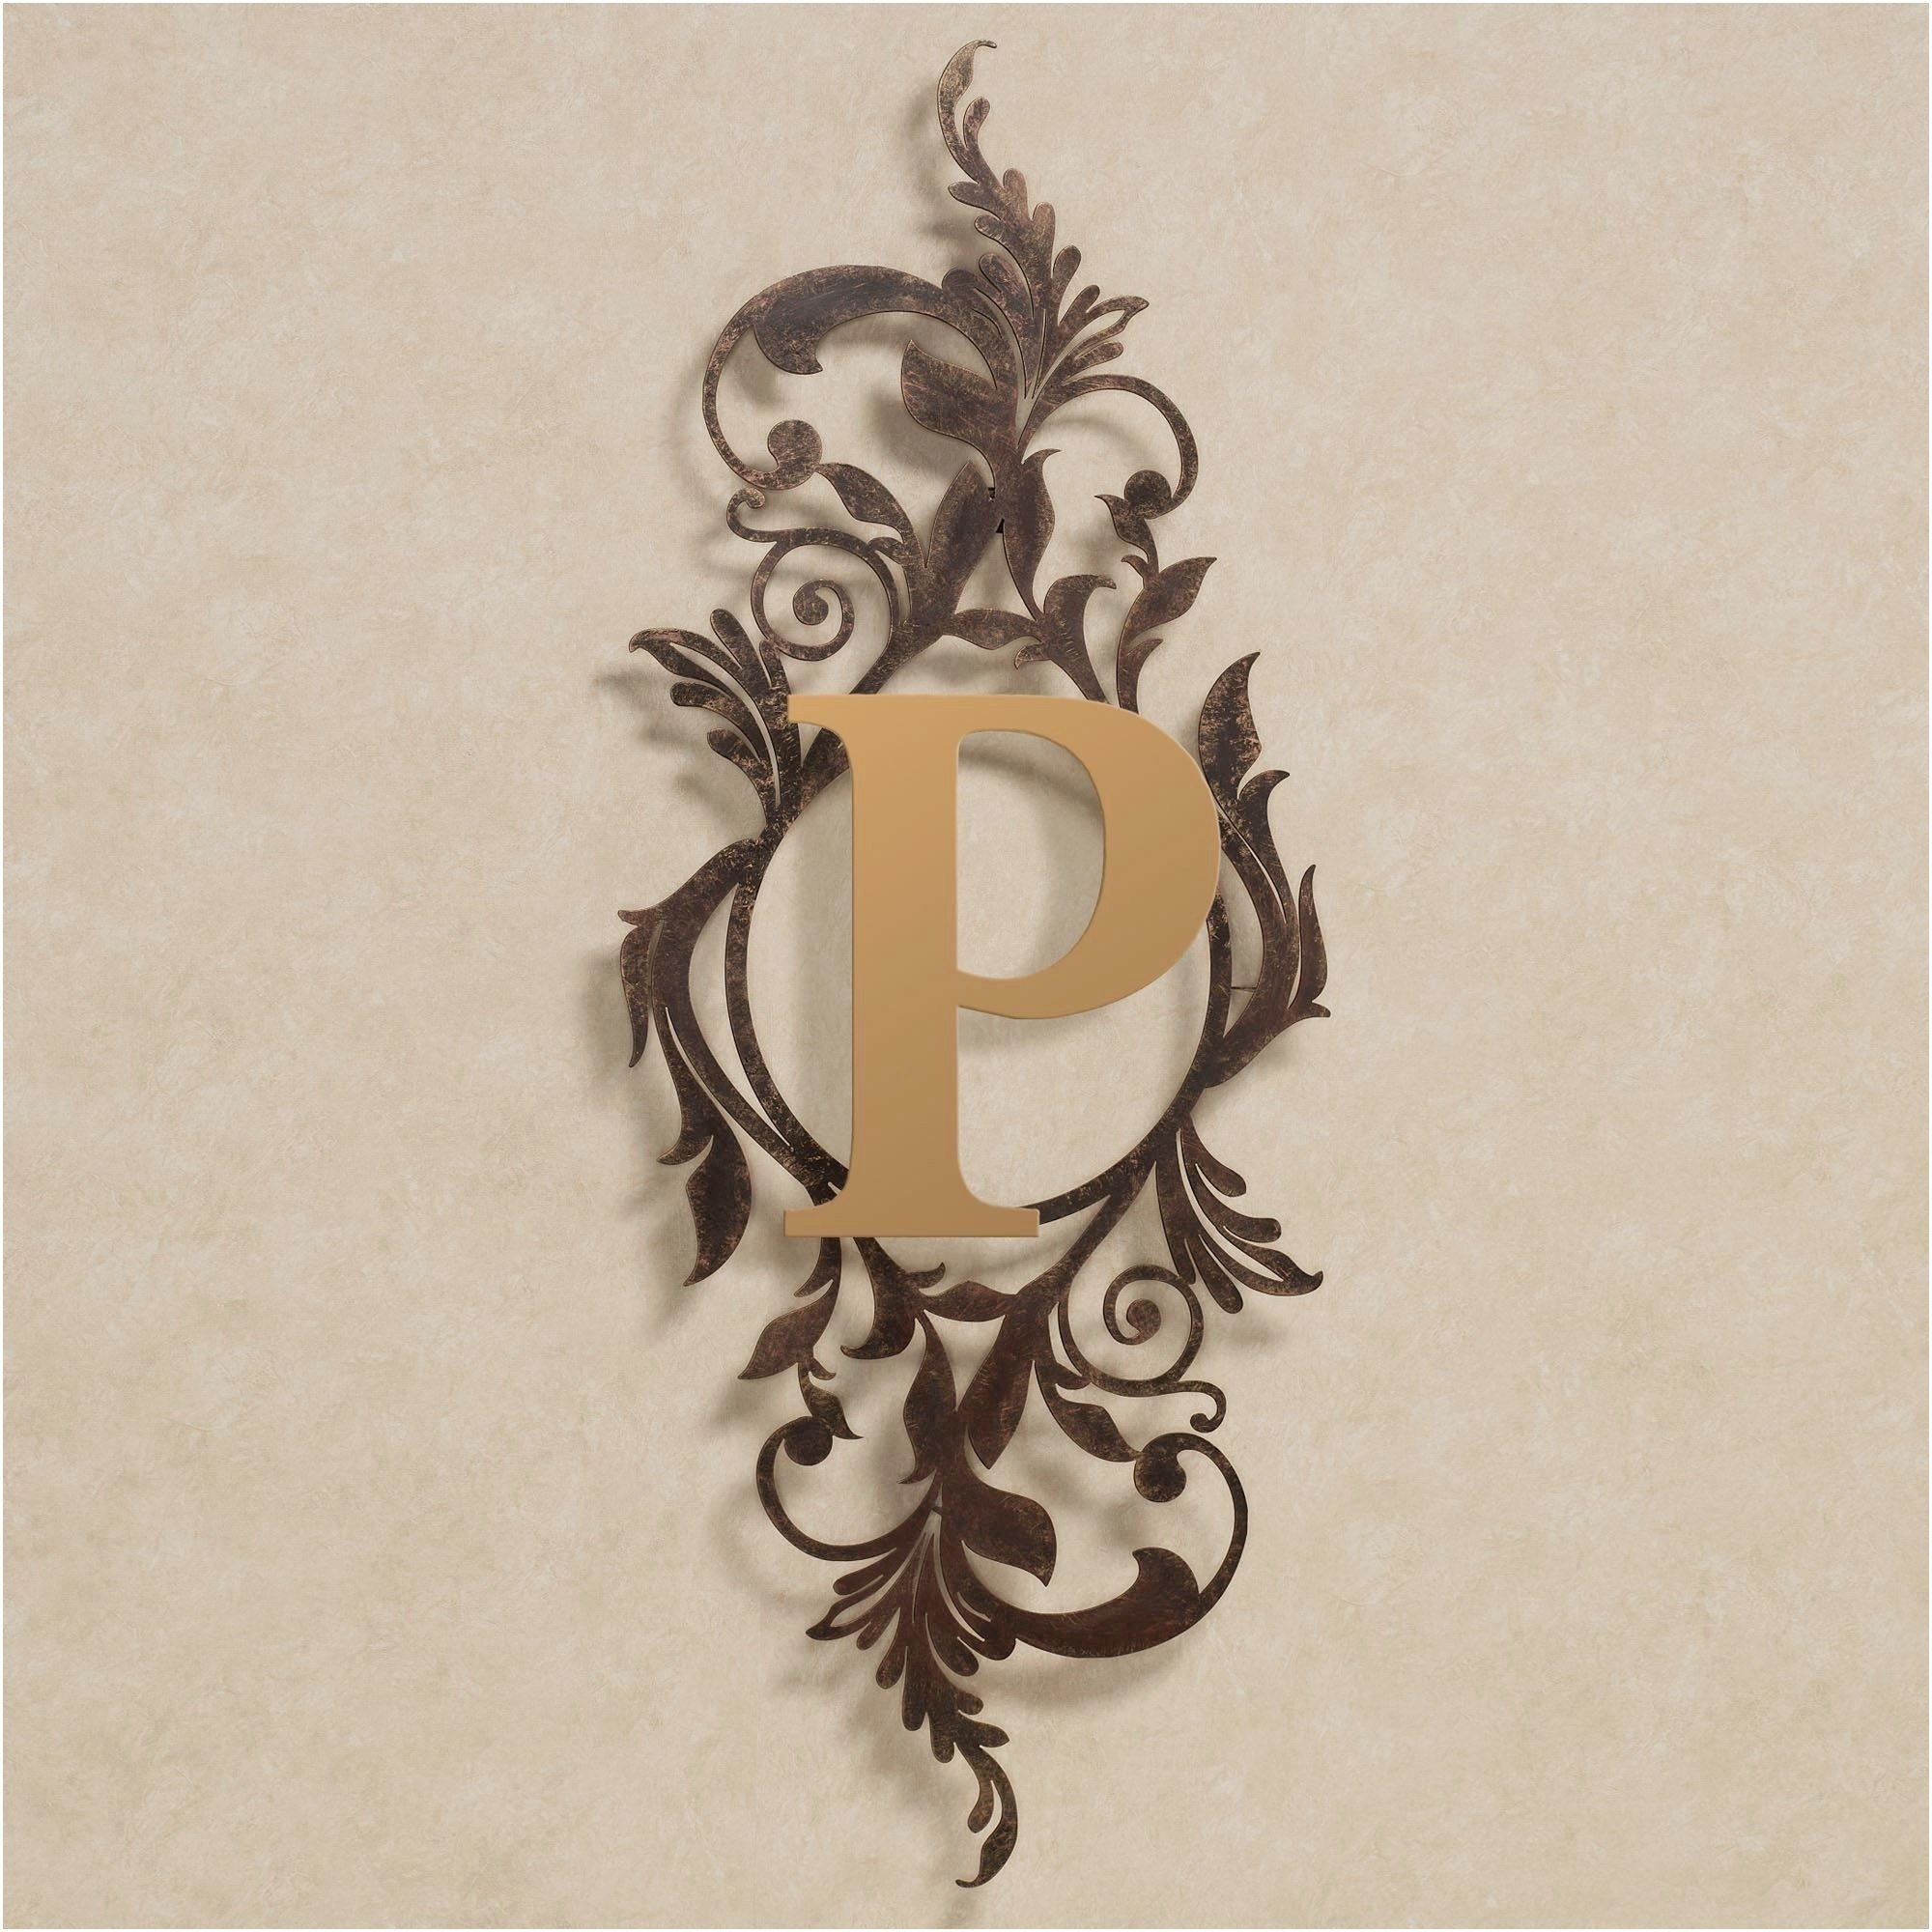 Gold Monogram Wall Decor Exceptional Beautiful Monogram Wall Decor inside Monogram Wall Art (Image 6 of 20)